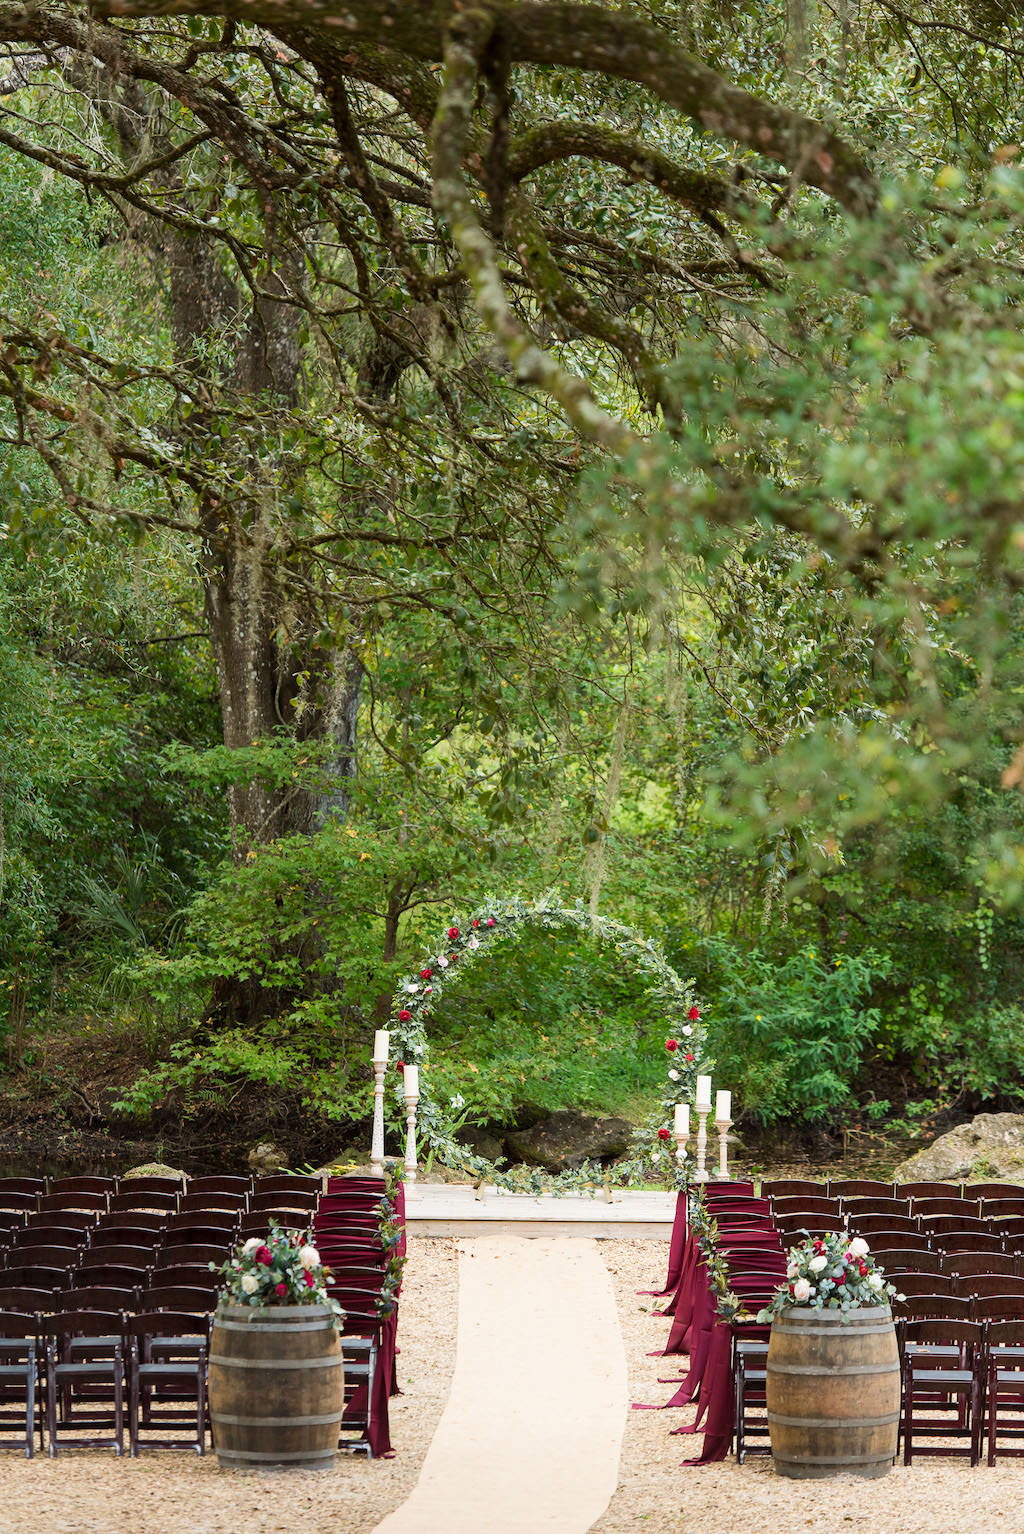 Rustic Outdoor Garden Wedding Ceremony, Wooden Chairs with Burgundy Sashes, Wooden Barrels with Floral Bouquets, Arch Covered in Greenery and Burgundy Flowers | Rustic Plant City Wedding Venue Kathleen's Garden